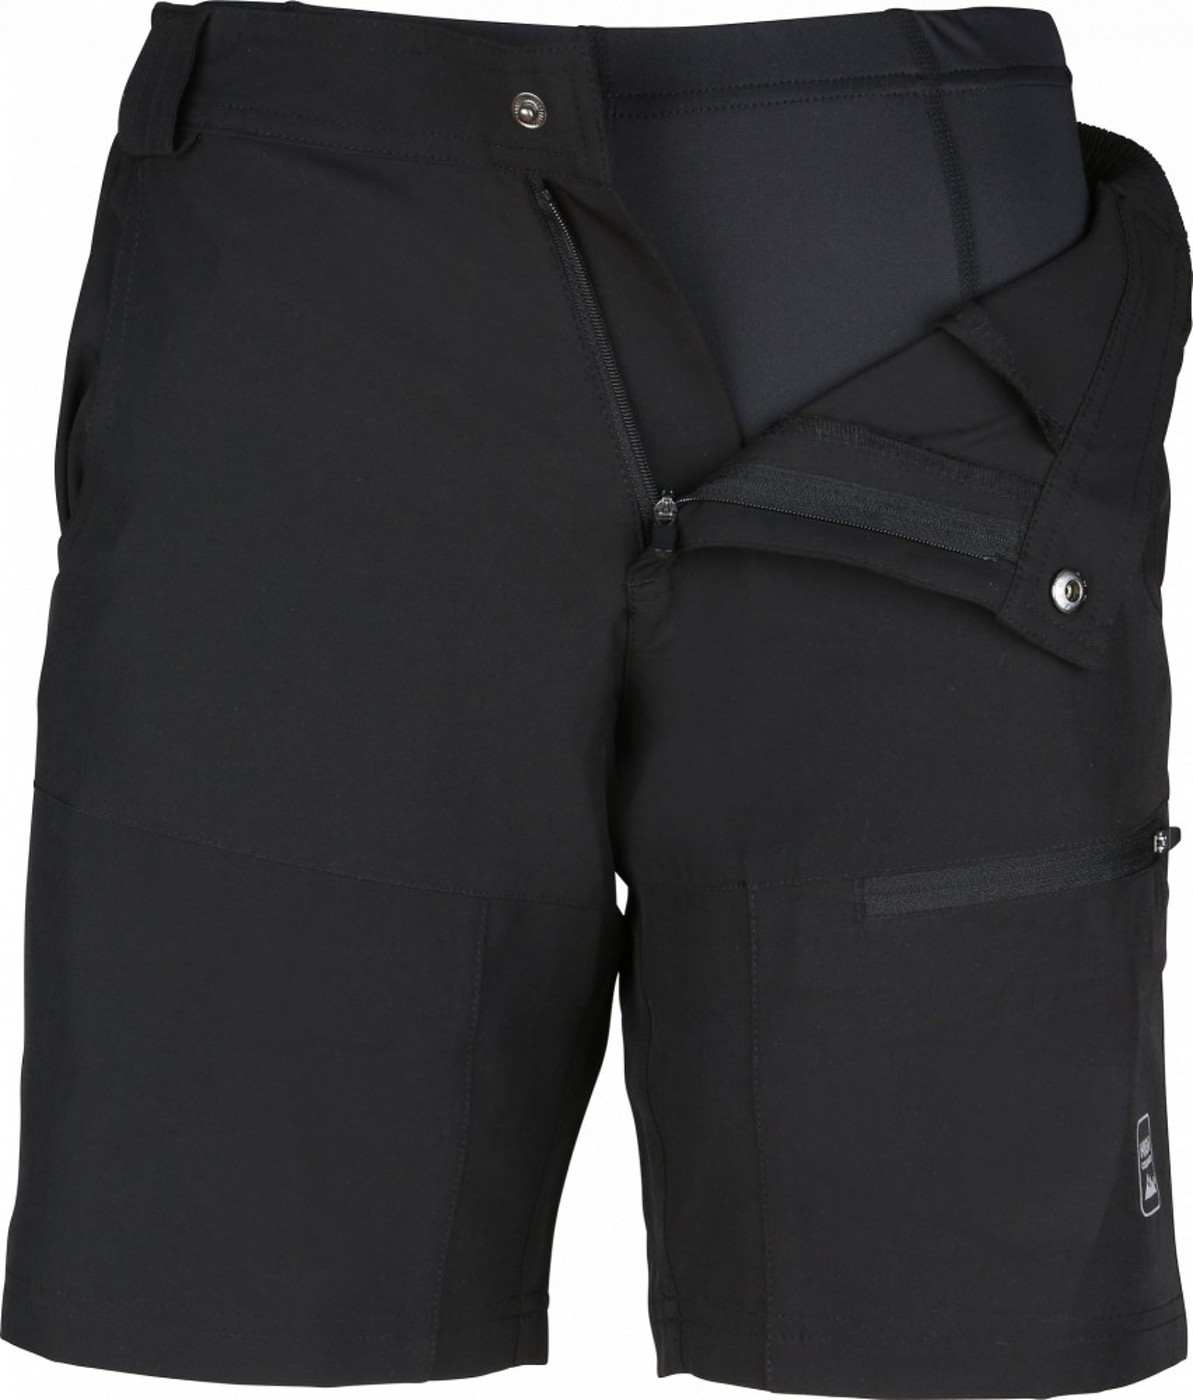 HIGH COLORADO Lds  2in1 Bike Short - Damen